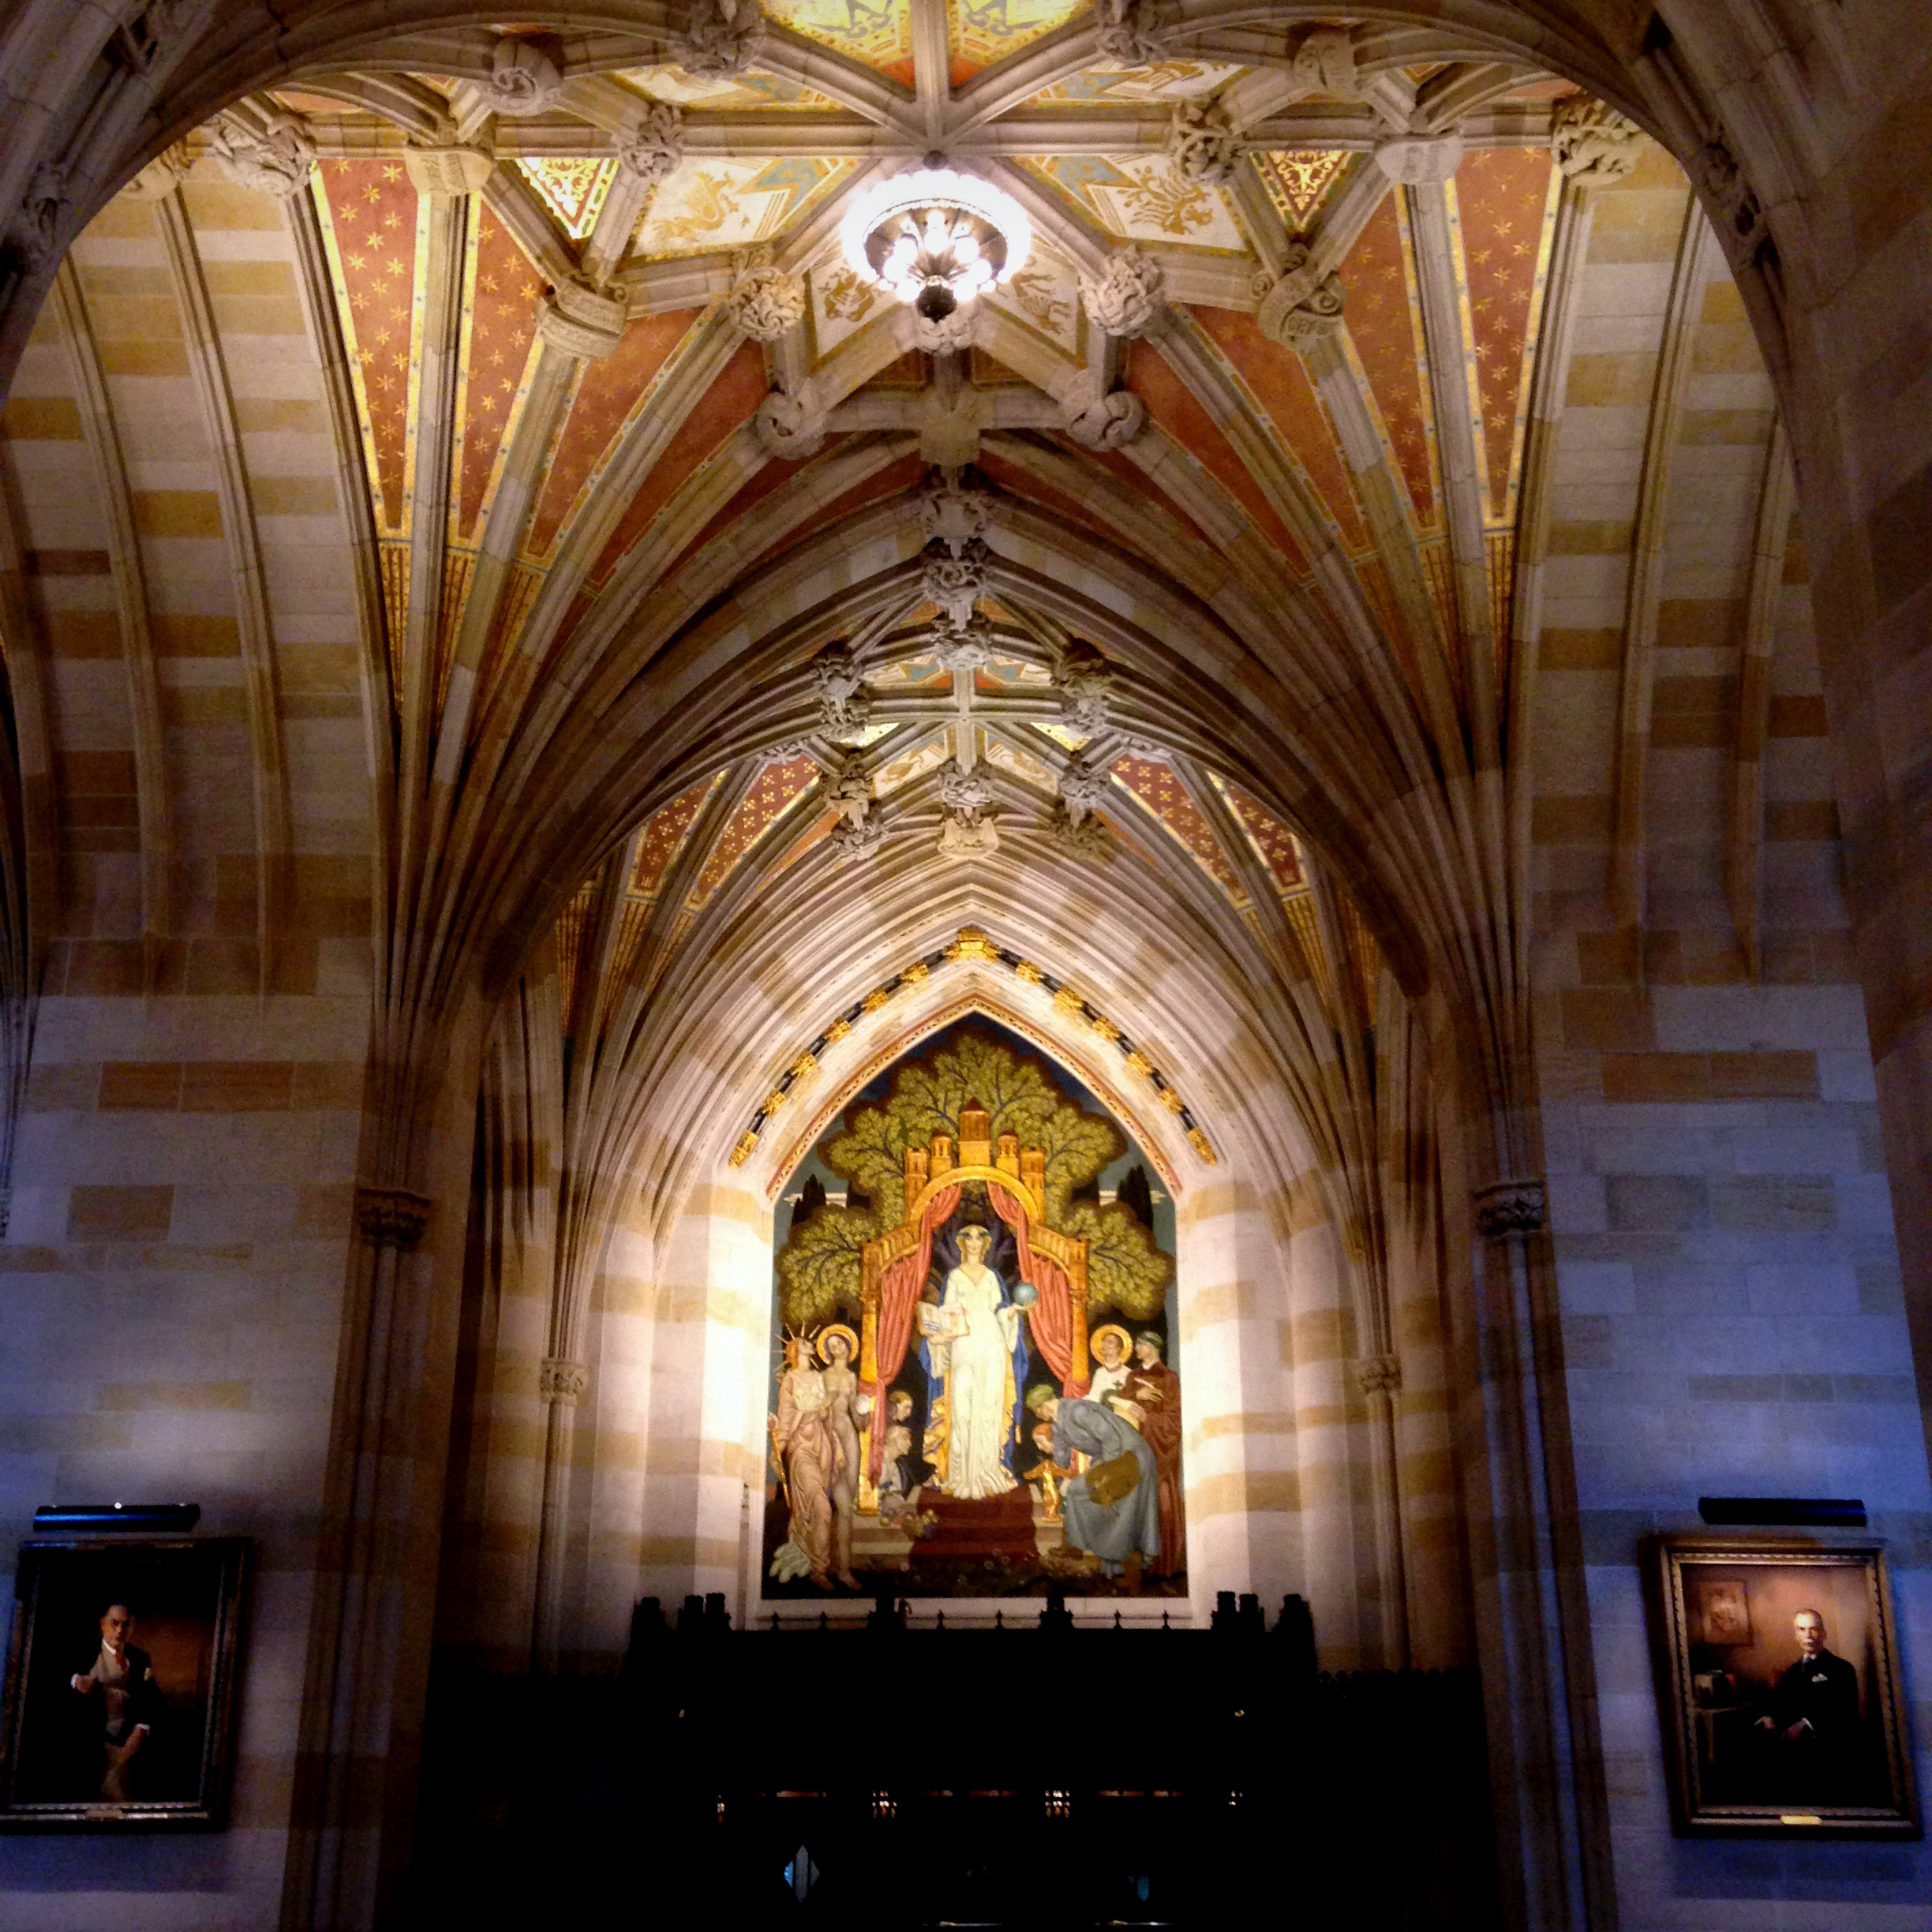 Sterling Memorial Library at Yale - Source: Akhil Sud, SM '16